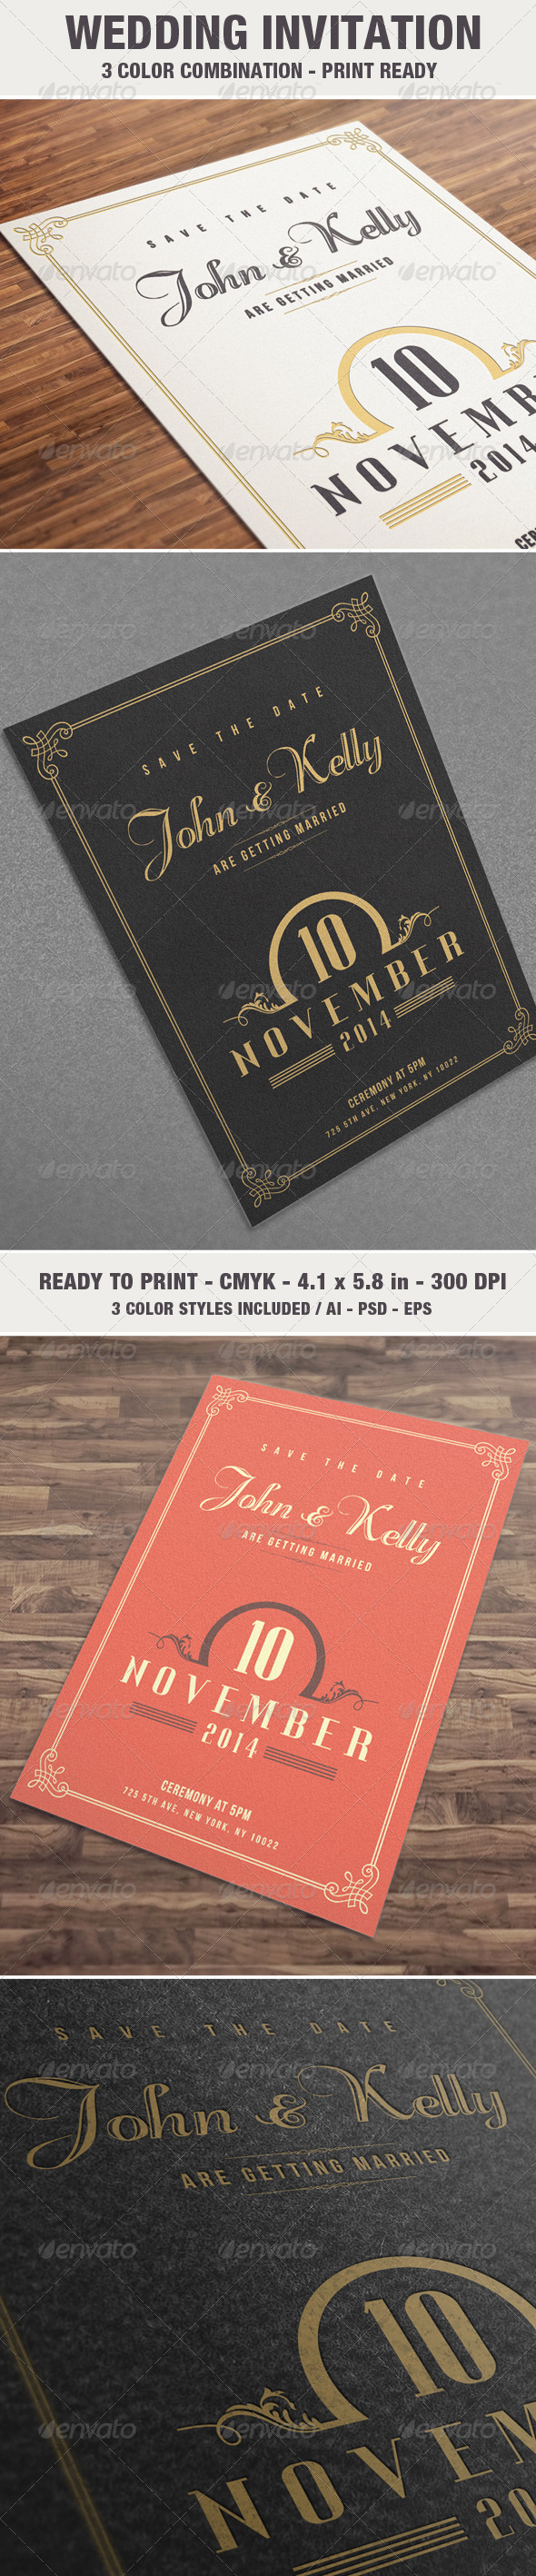 Elegant & Vintage Wedding Invitation / Card V2 - Weddings Cards & Invites